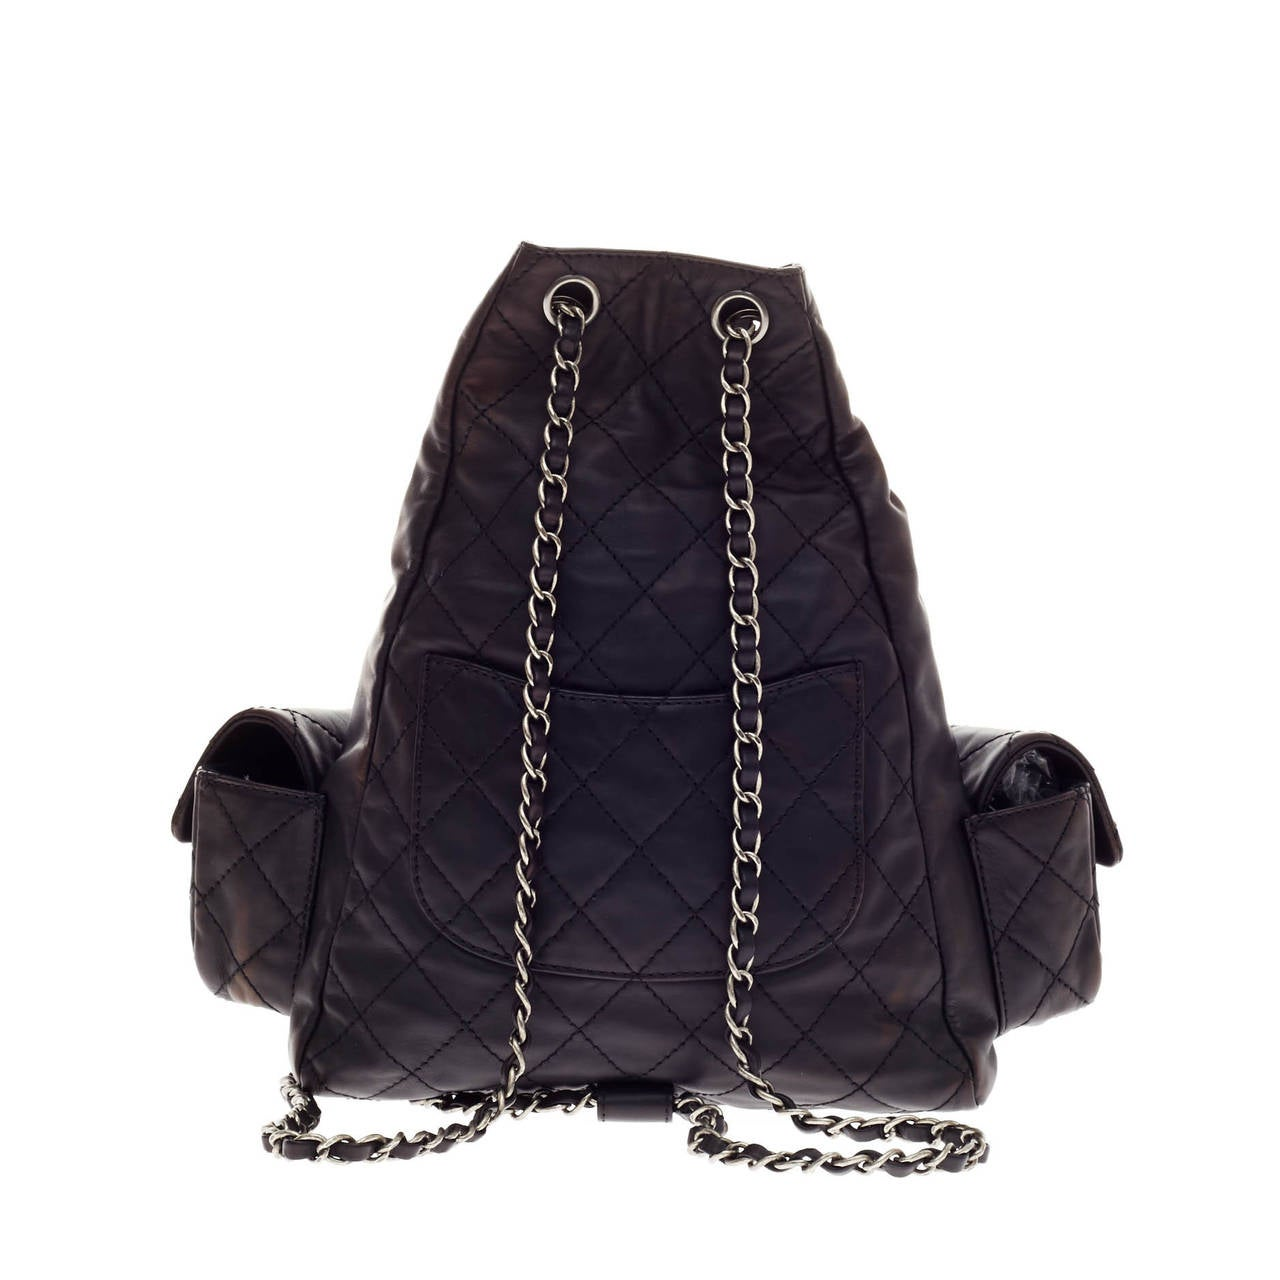 8bc33f020606 Women s Chanel Backpack Is Back Calfskin For Sale